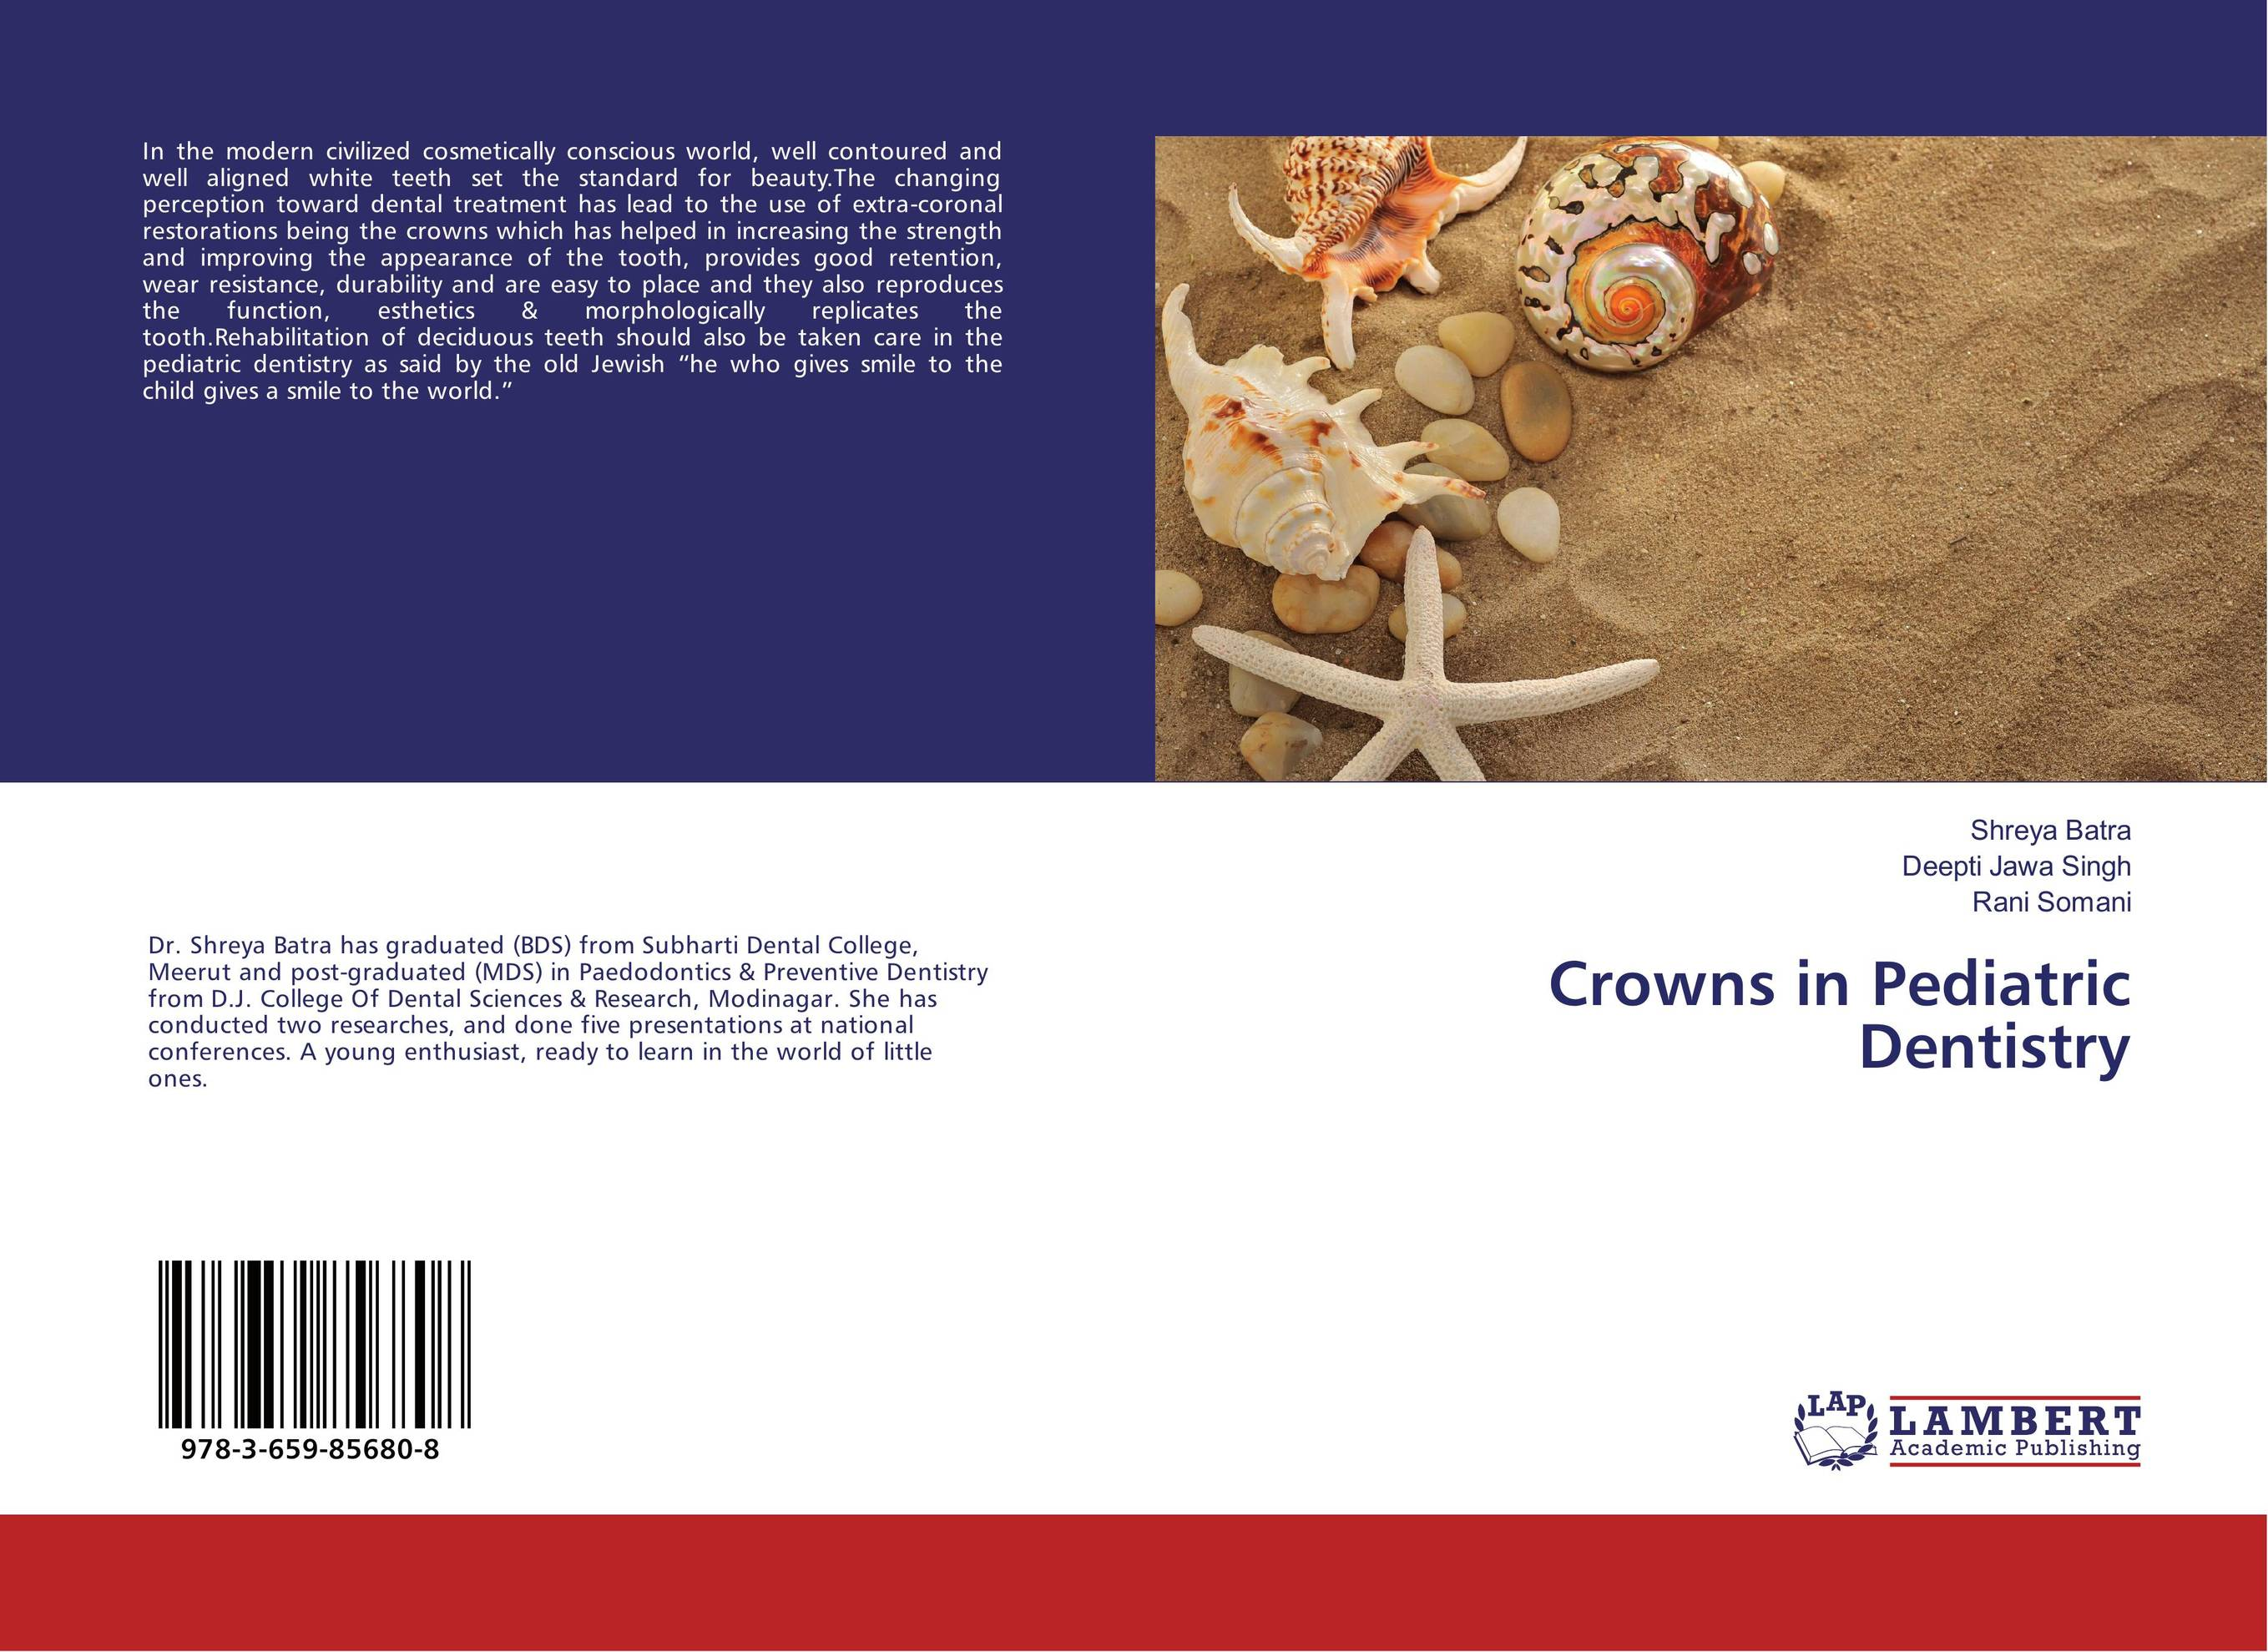 Crowns in Pediatric Dentistry esthetics in implant dentistry